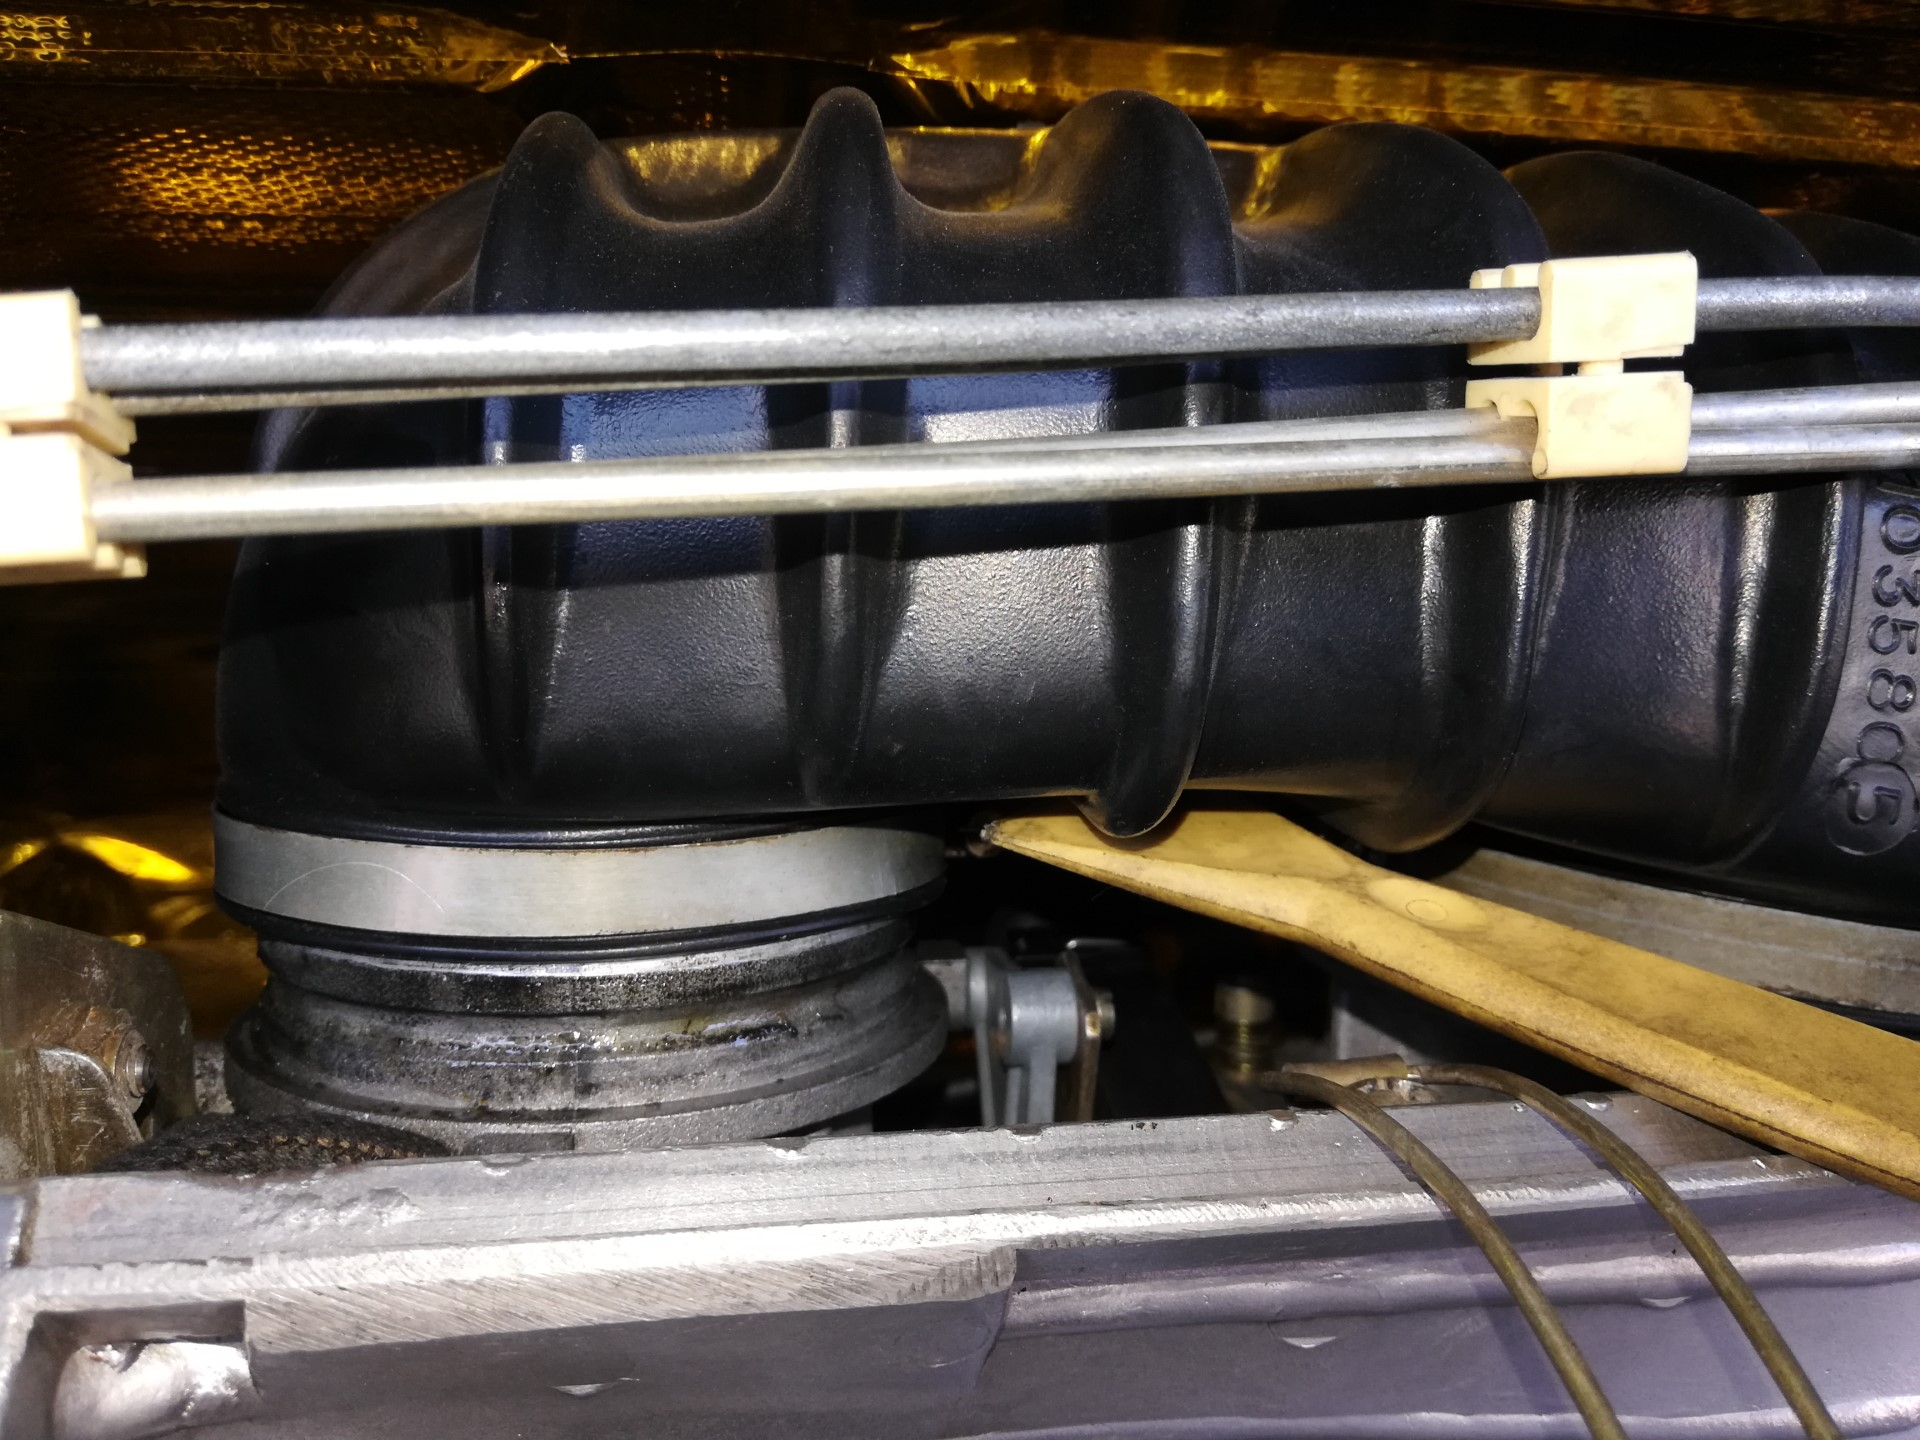 Air-cooled Porsche 911 CIS intake boot removal